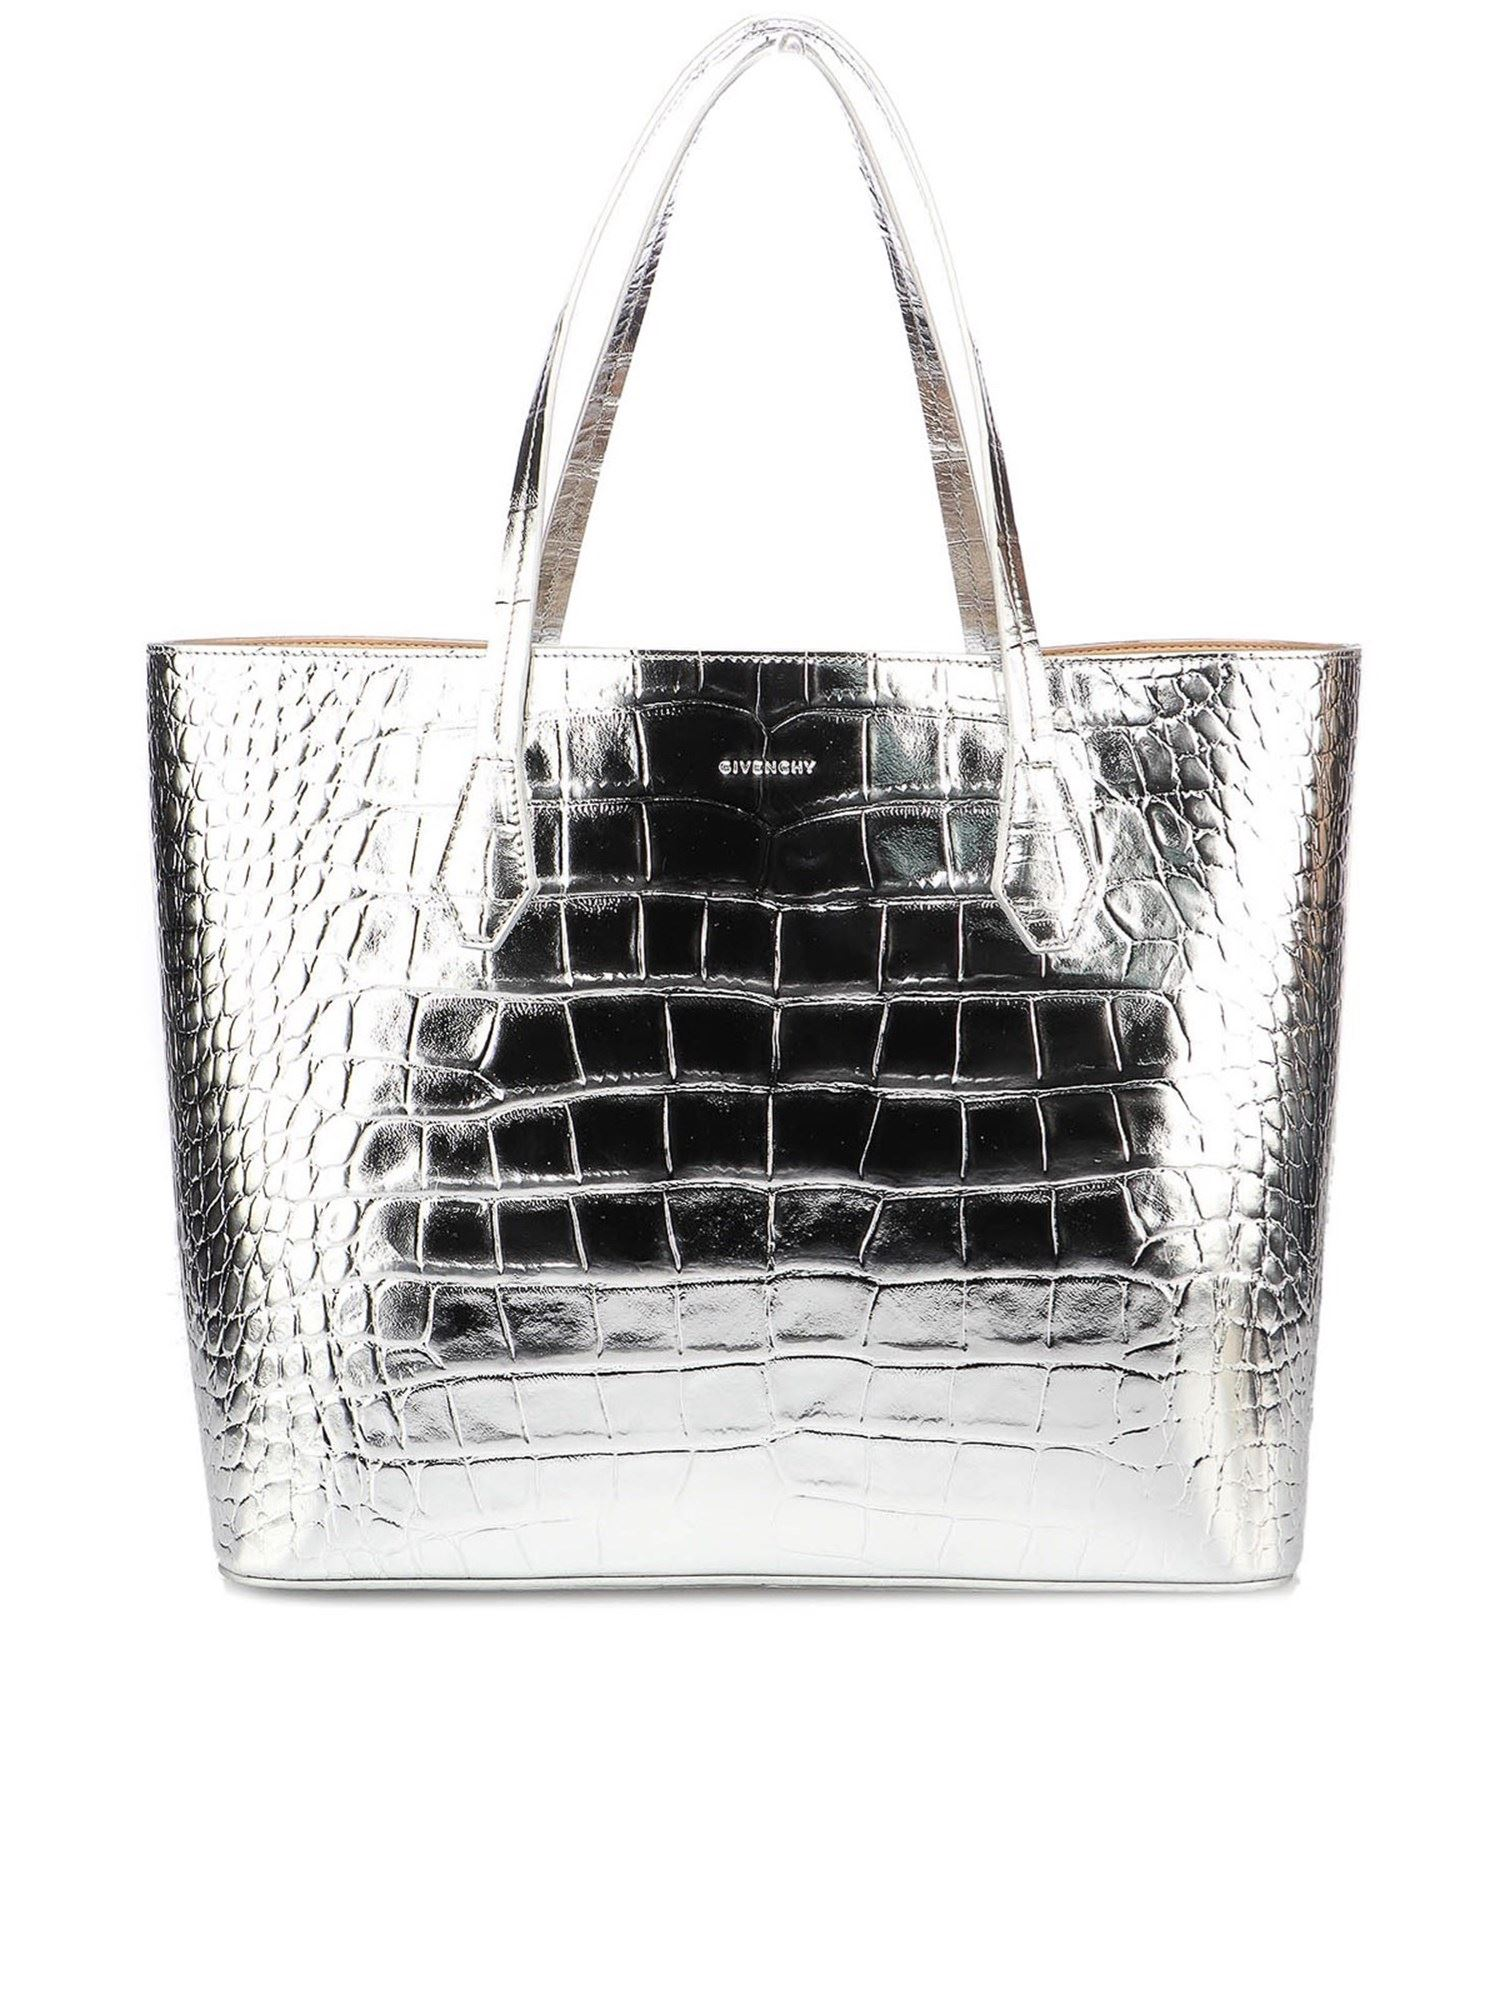 Givenchy WING SHOPPER BAG IN SILVER COLOR